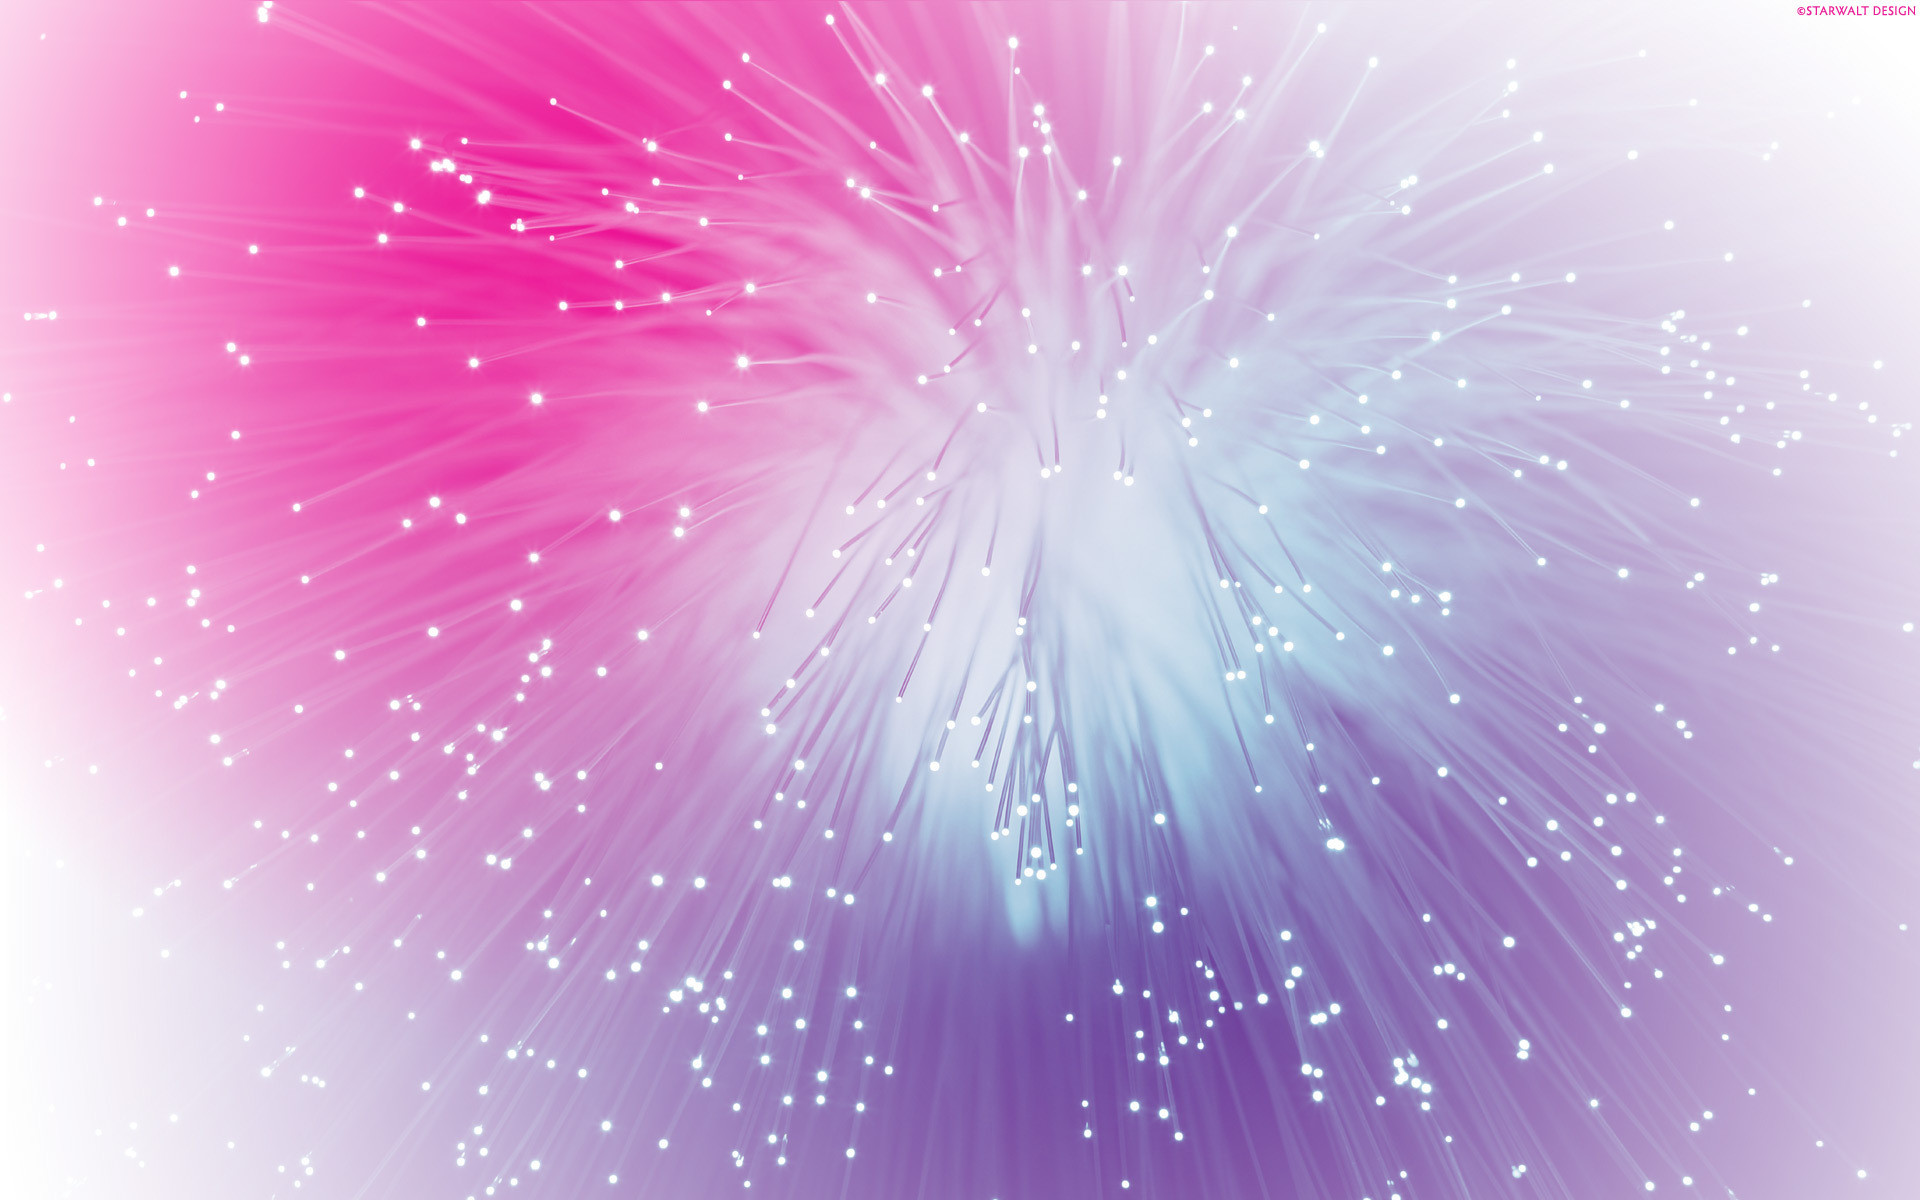 Pink and purple wallpapers 61 images - Pink wallpaper 4k ...